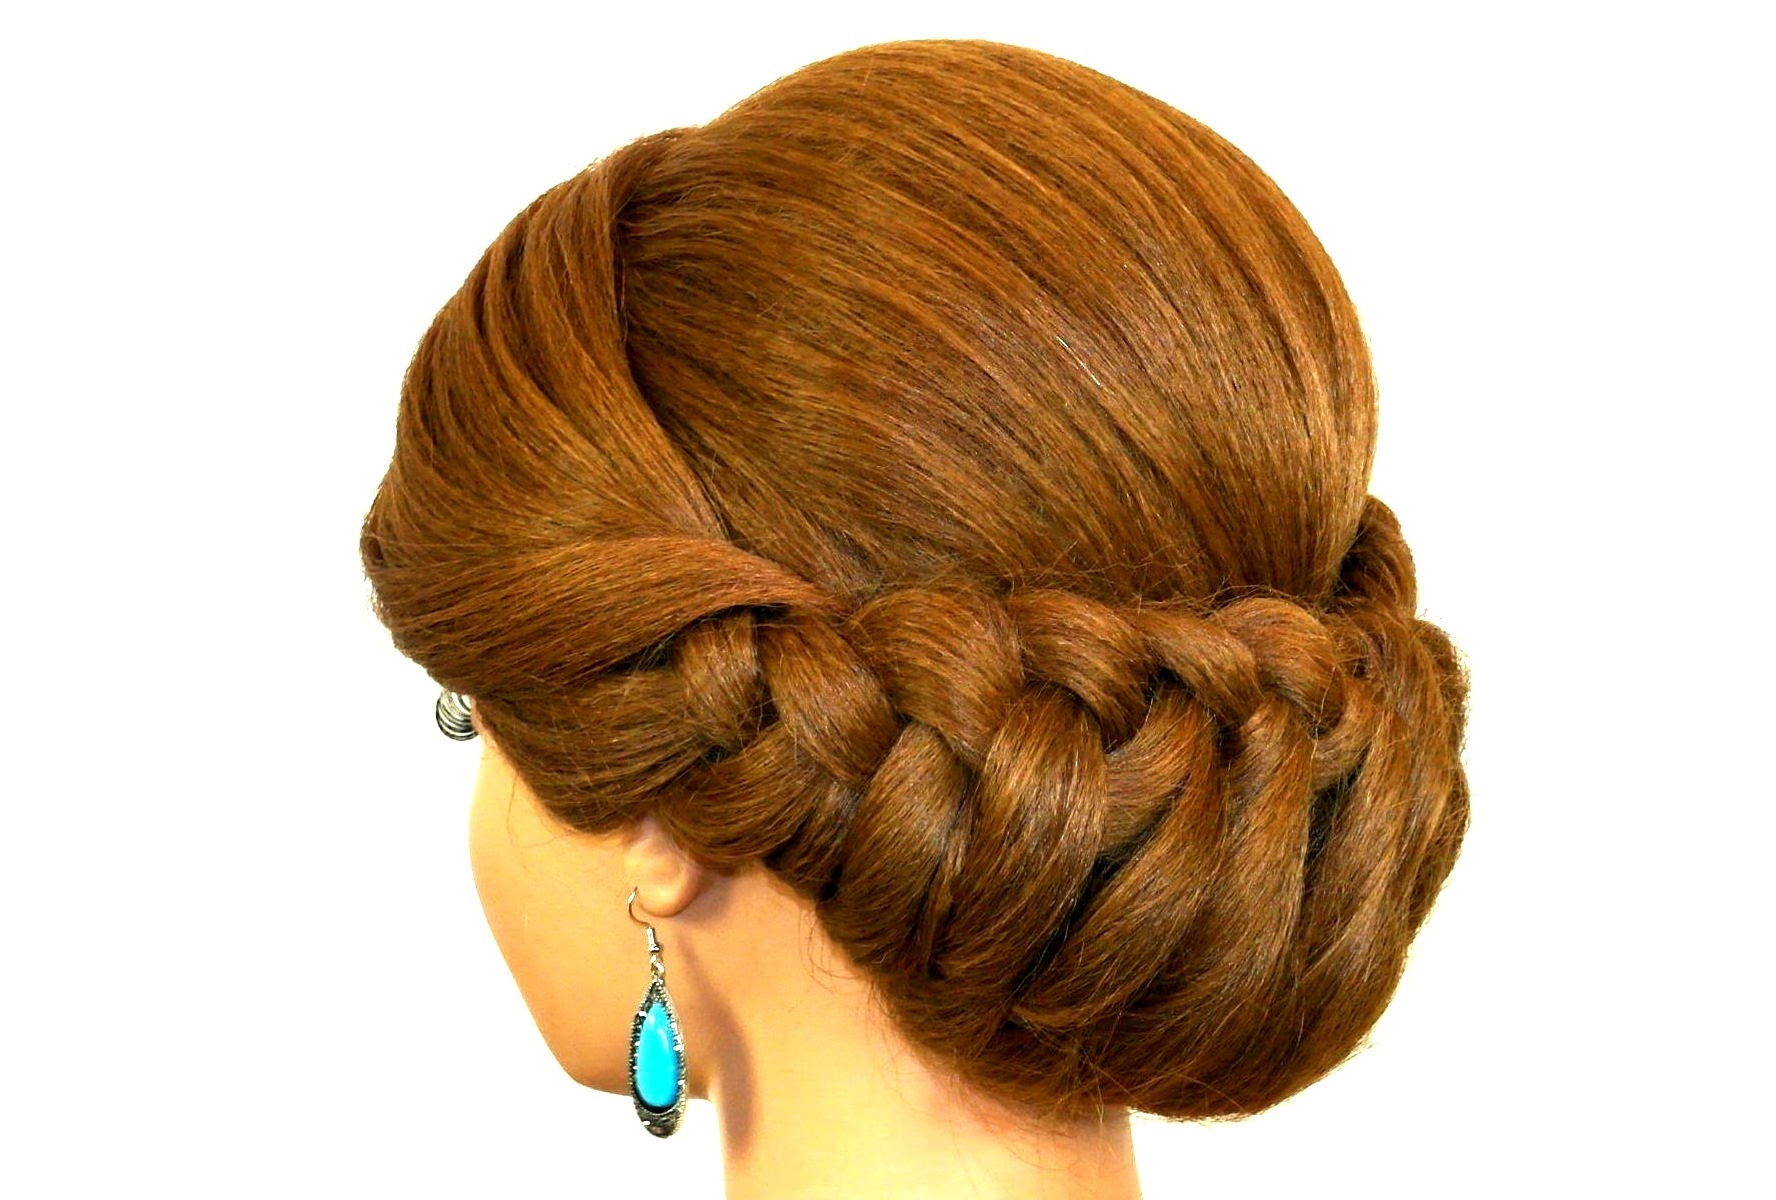 Braided Updo Hairstyle For Medium Long Hair Tutorial – Youtube In Braided Updo Hairstyles For Long Hair (View 10 of 15)